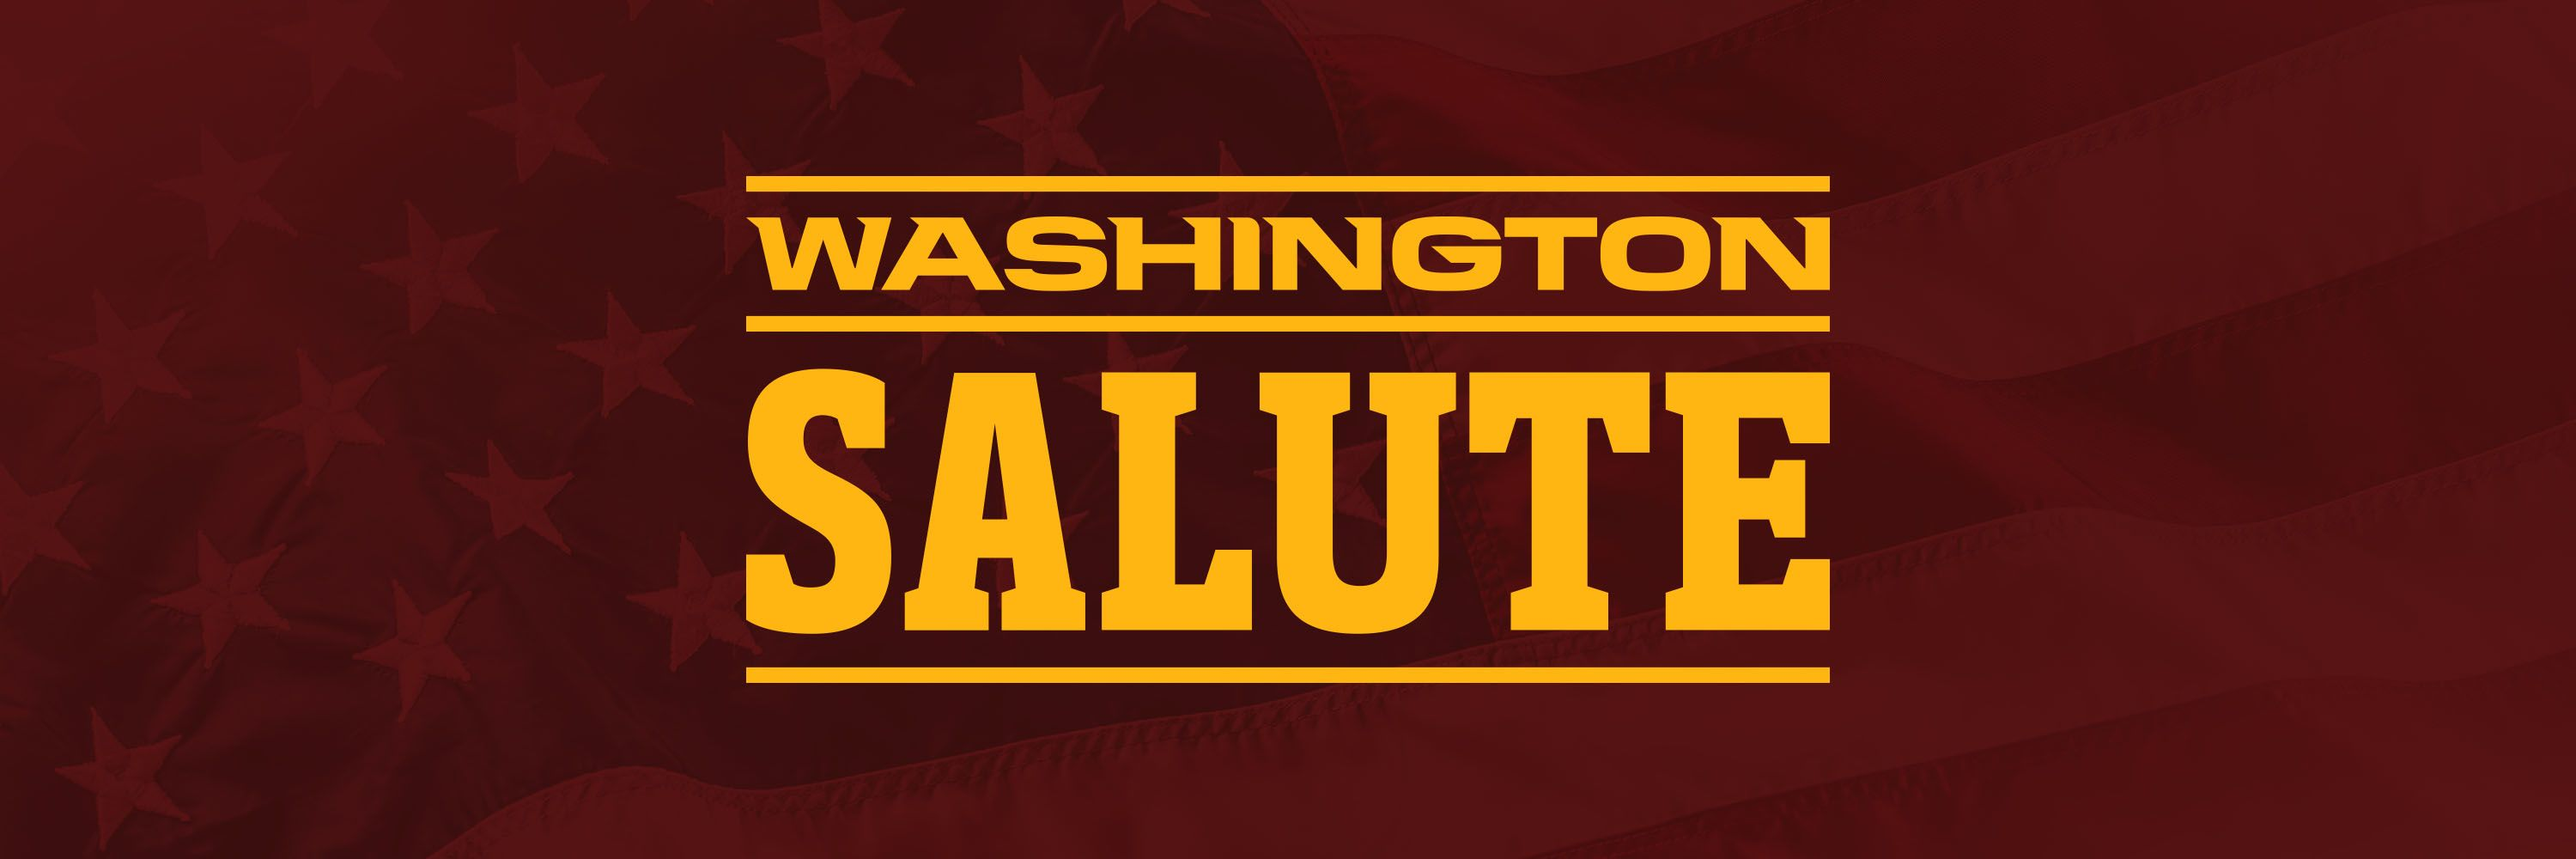 WashingtonSalute_Header